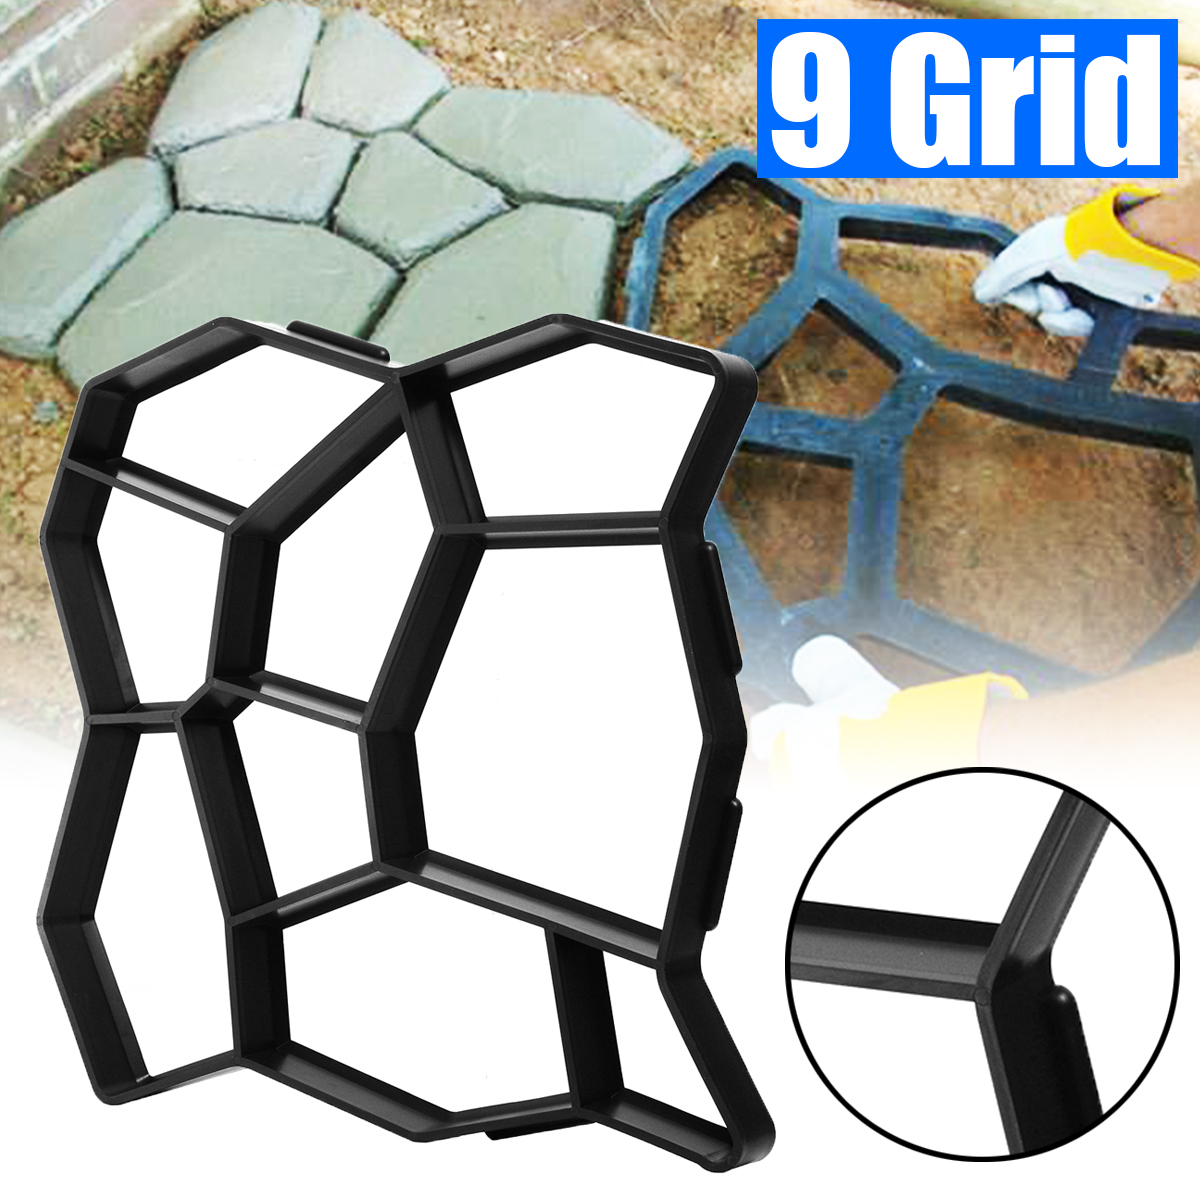 50*50*4.5cm DIY Paving Mold Stepping Stone Concrete Floor Path Maker Mould Pavement Driveway Patio Paver Path Garden Design